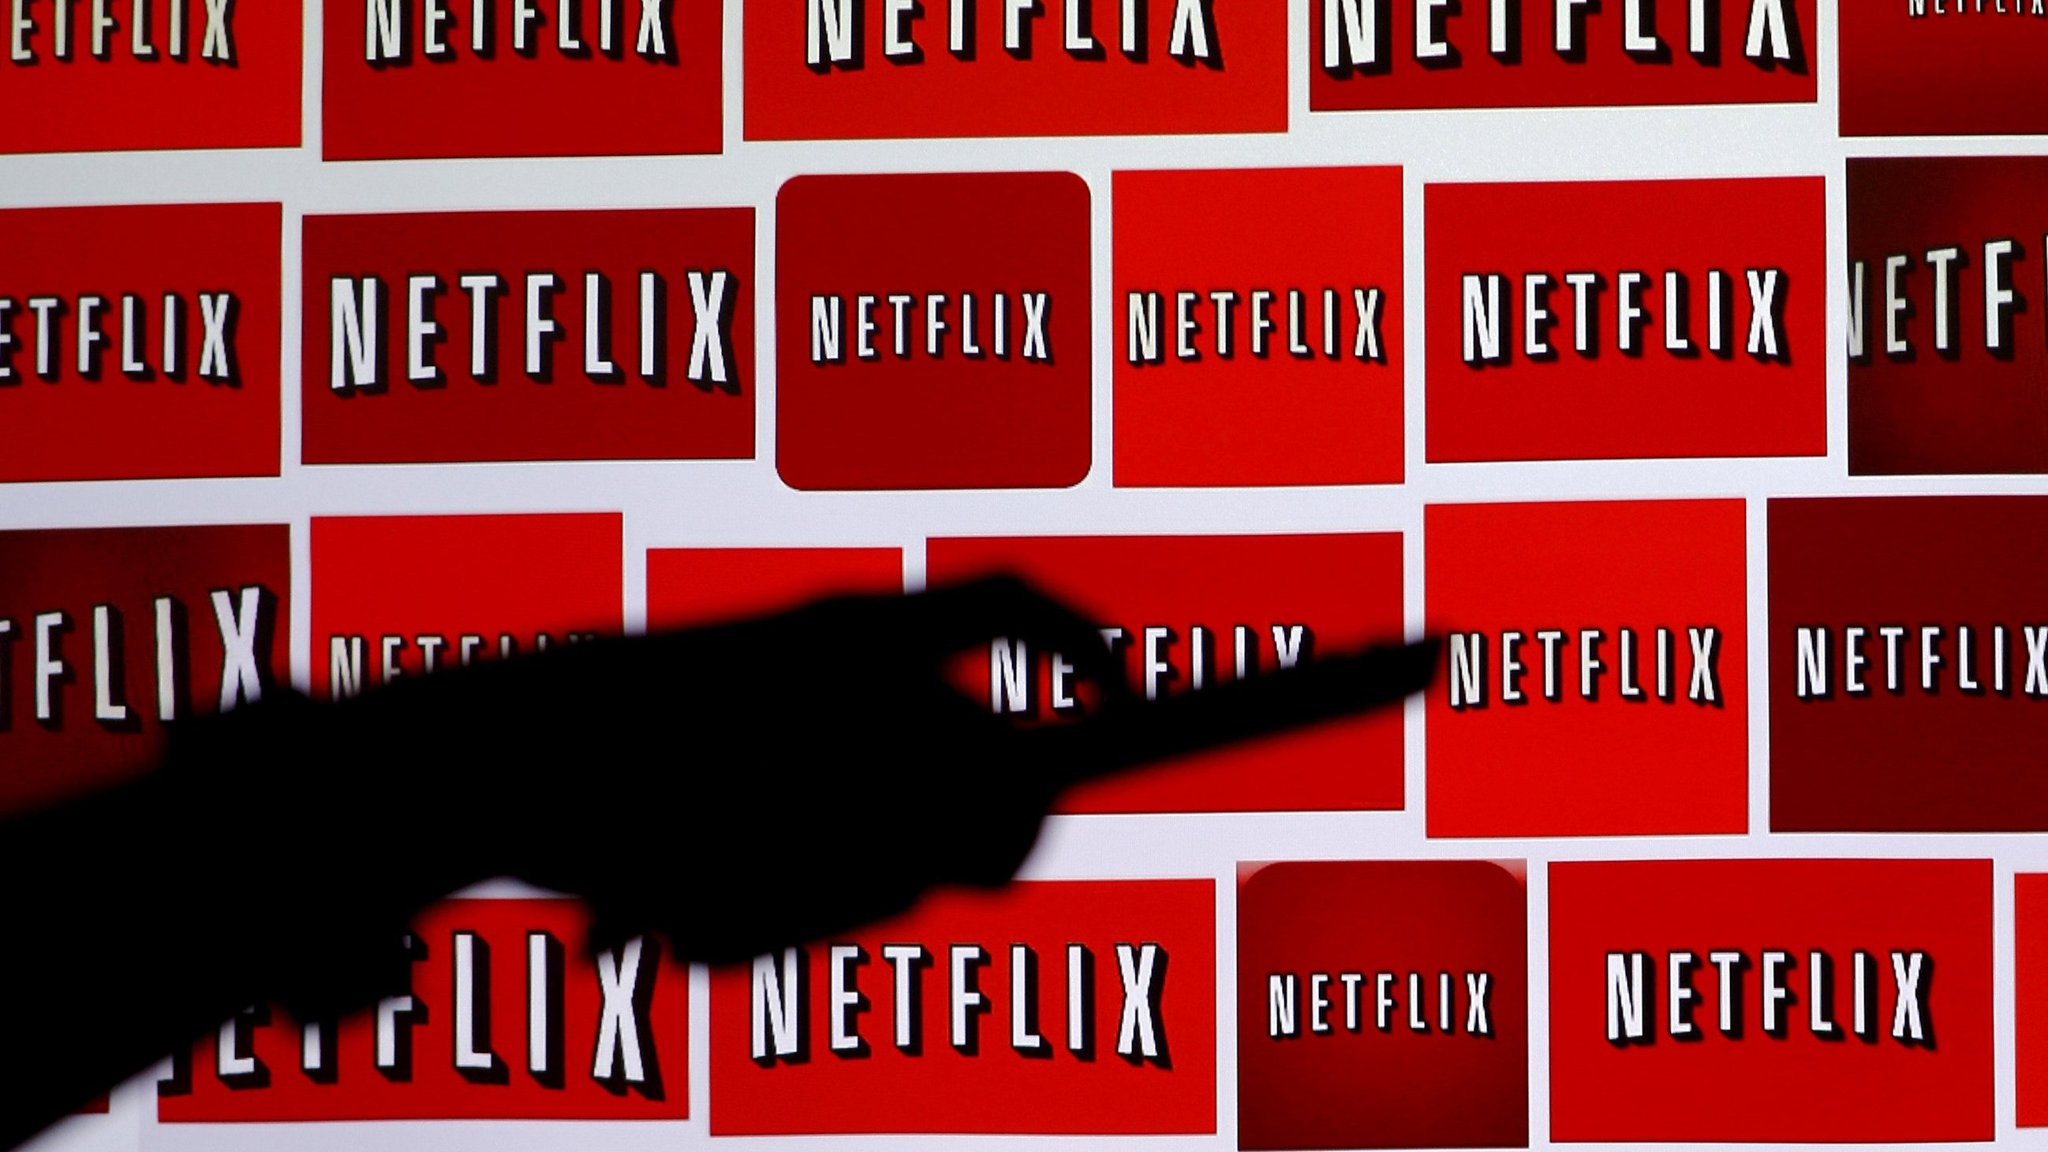 Netflix boosted original content output by 54.6 percent in 2019